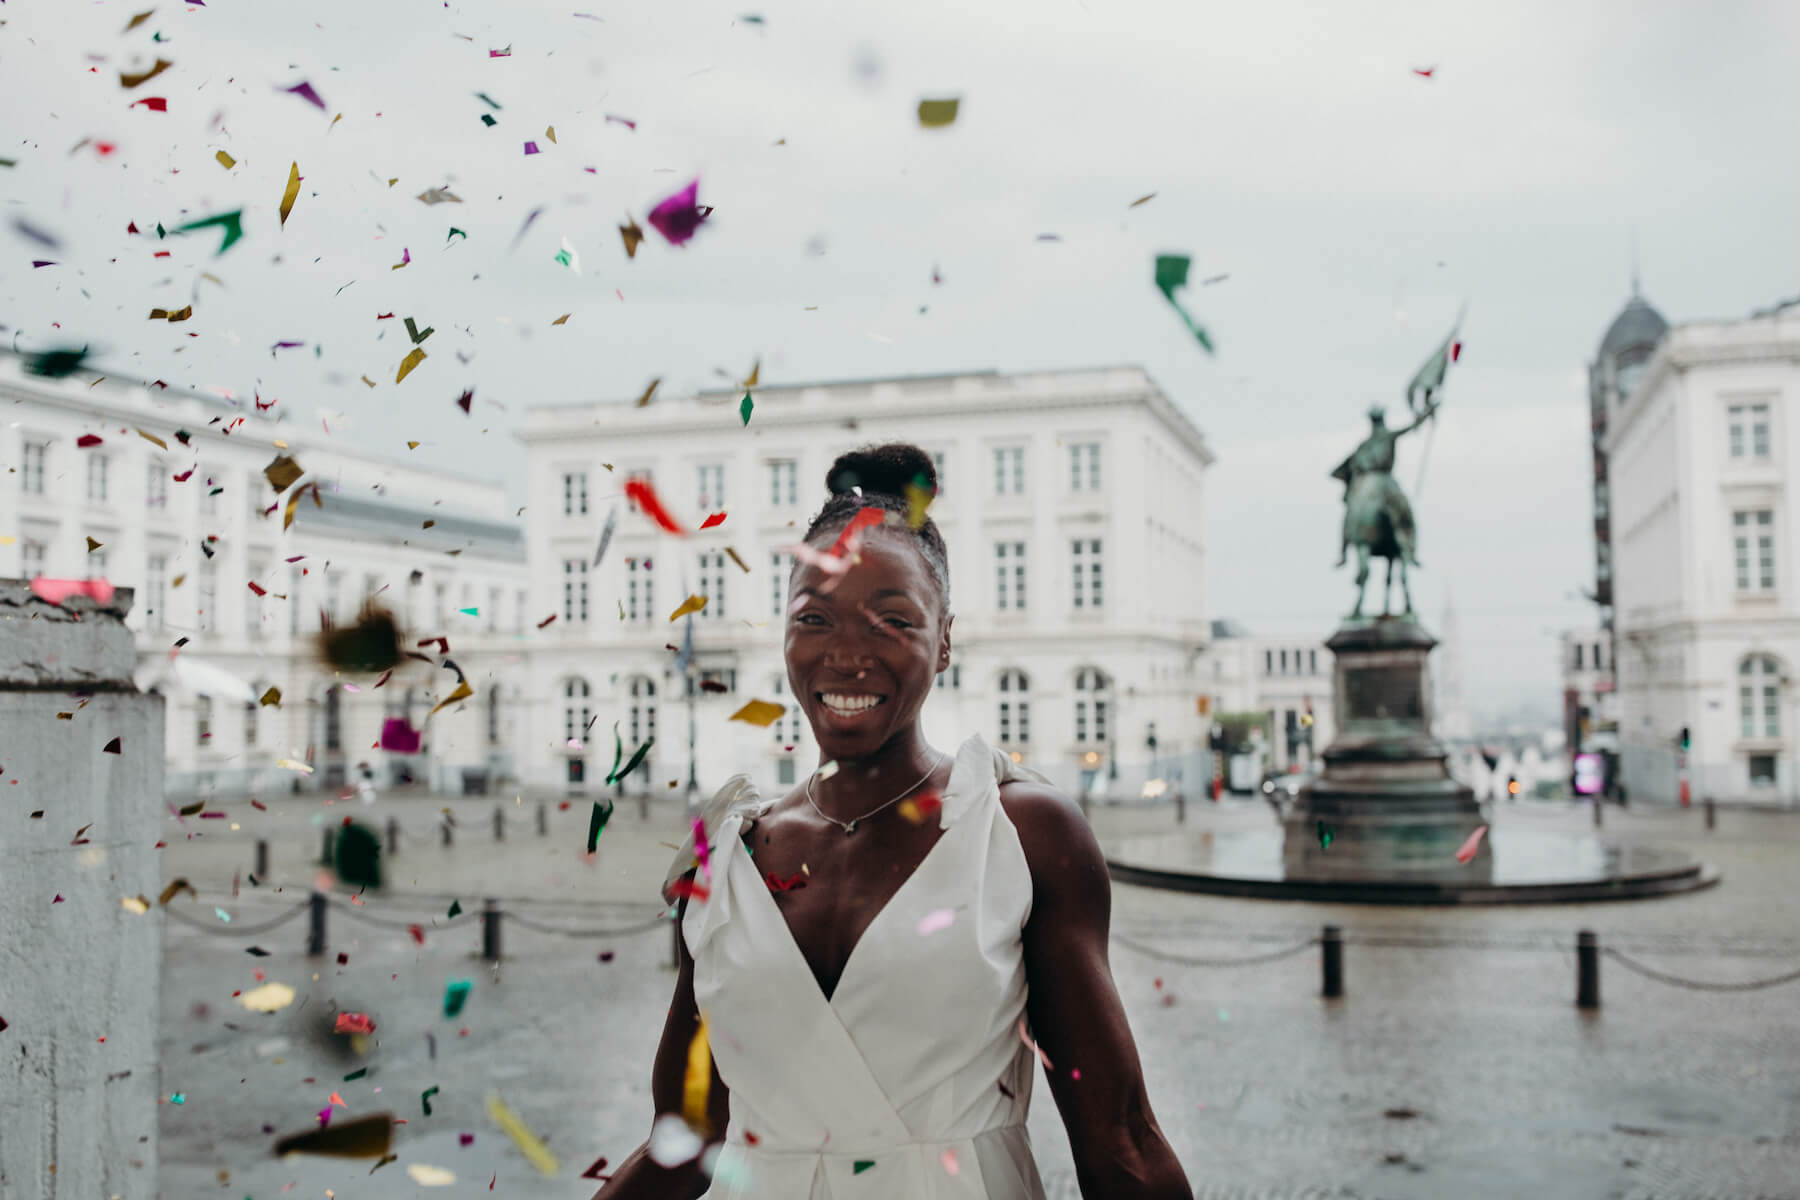 A woman celebrating her birthday with confetti and gold balloons wearing a white dress on a photoshoot with Flytographer.